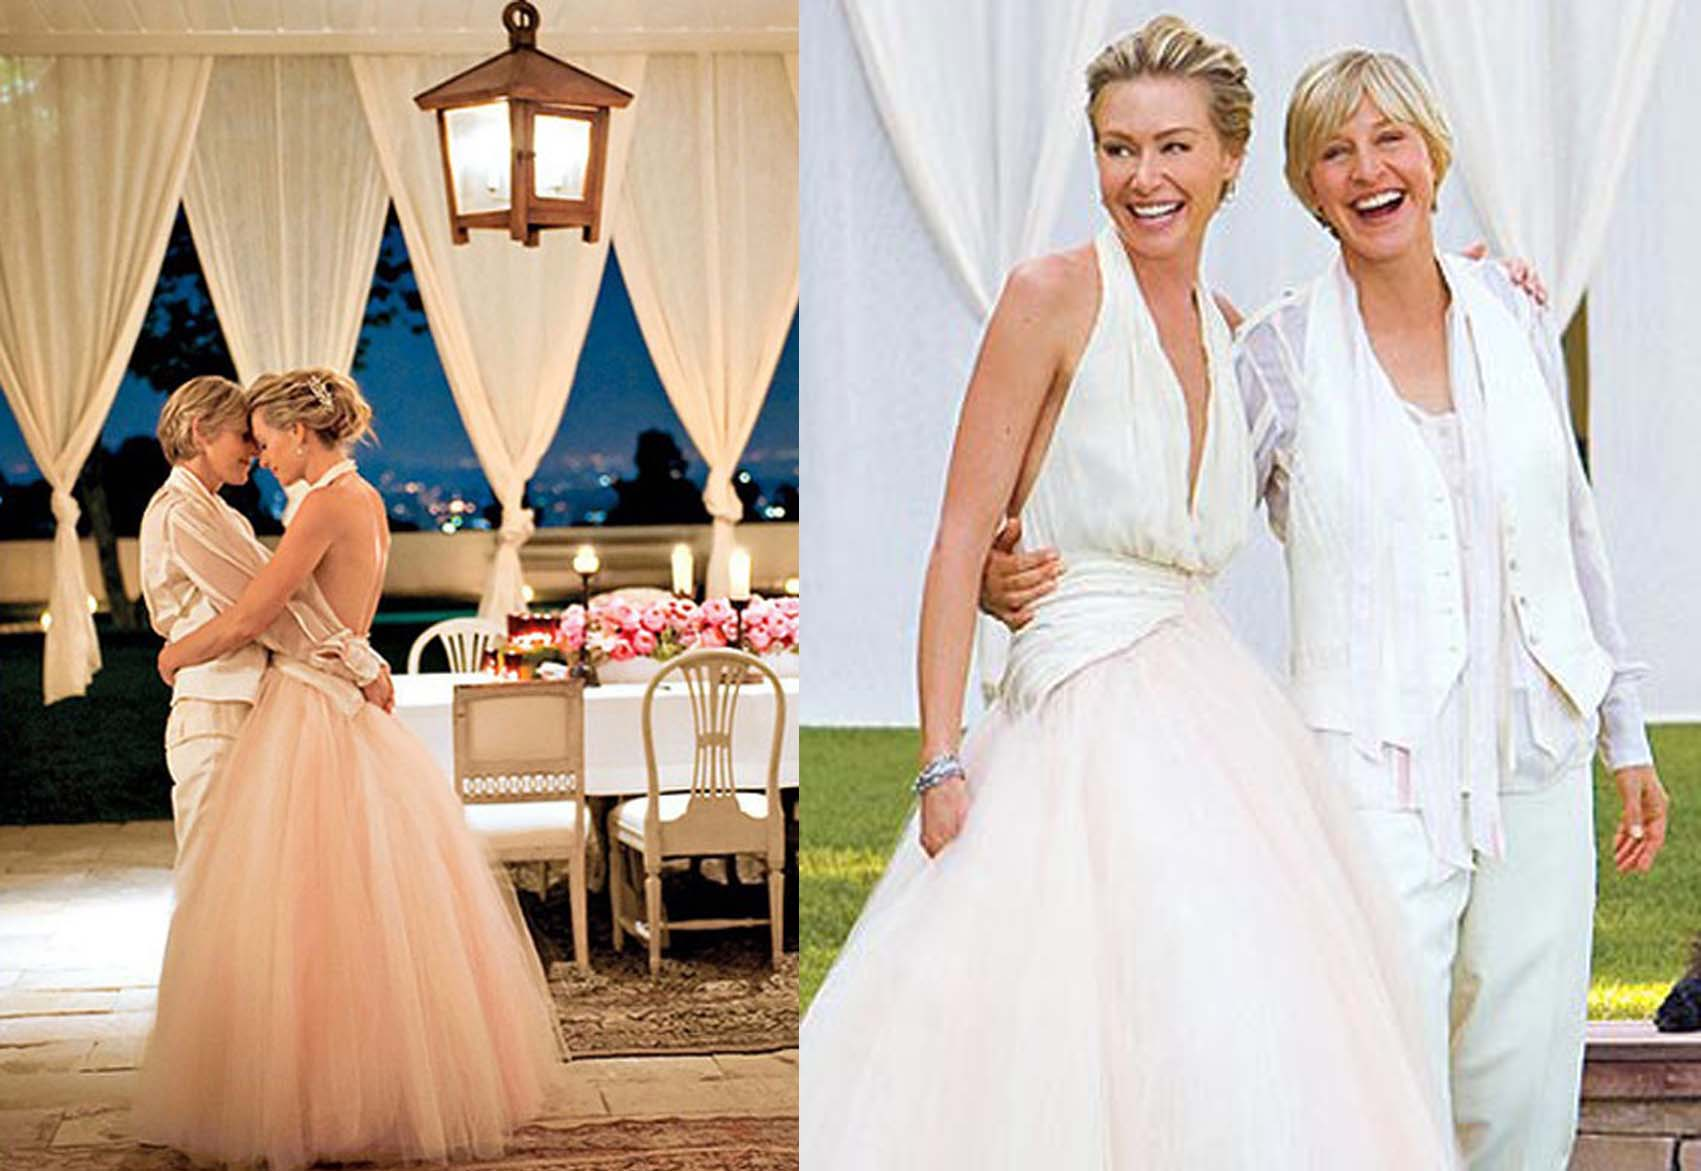 Ellen and her husband tied the knot in a lavishing wedding on August 16, 2008